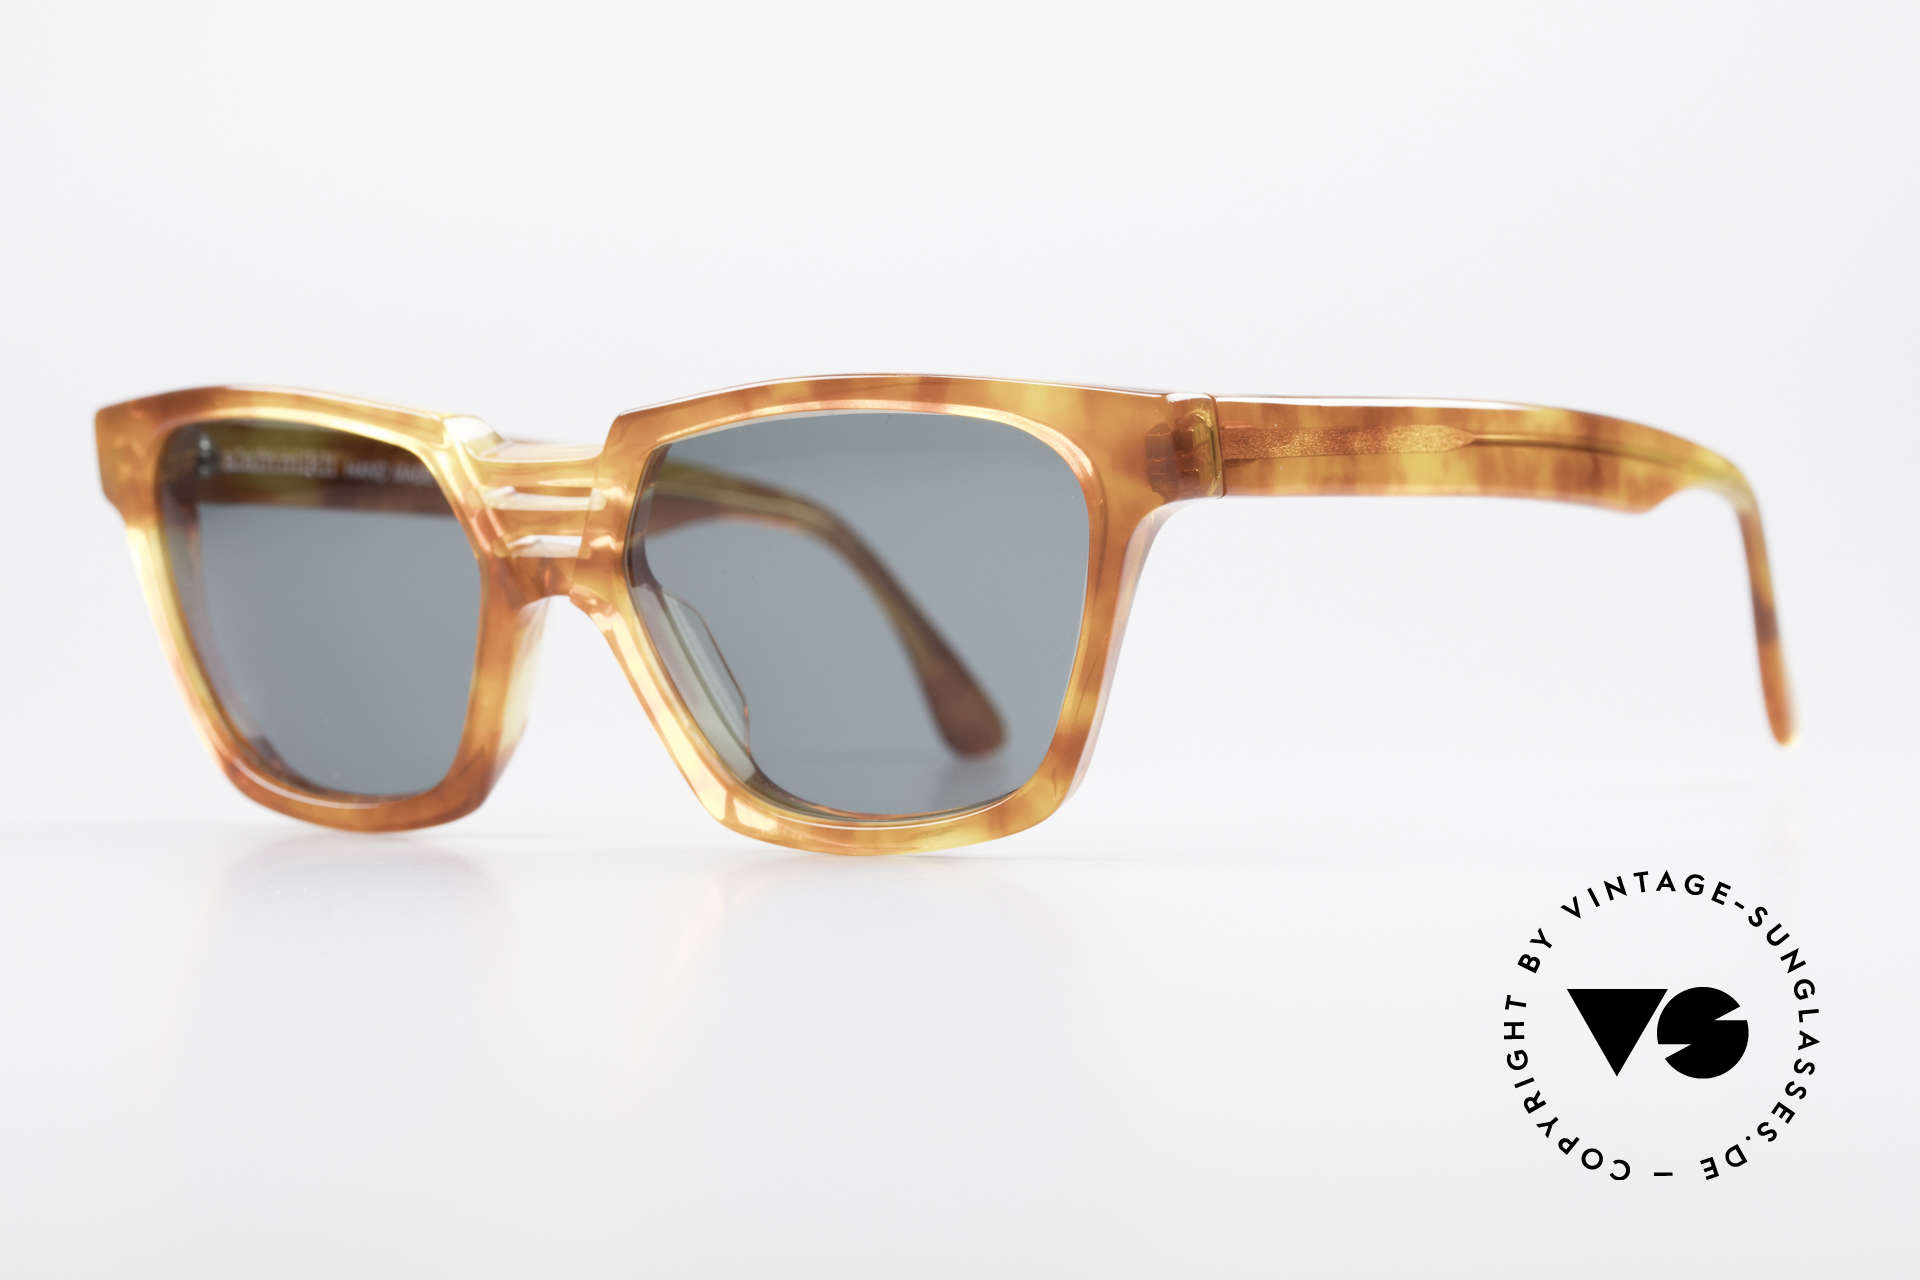 Alain Mikli 0145 / 033 Striking 1980's Sunglasses, top quality, handmade in France, 100% UV protection, Made for Men and Women